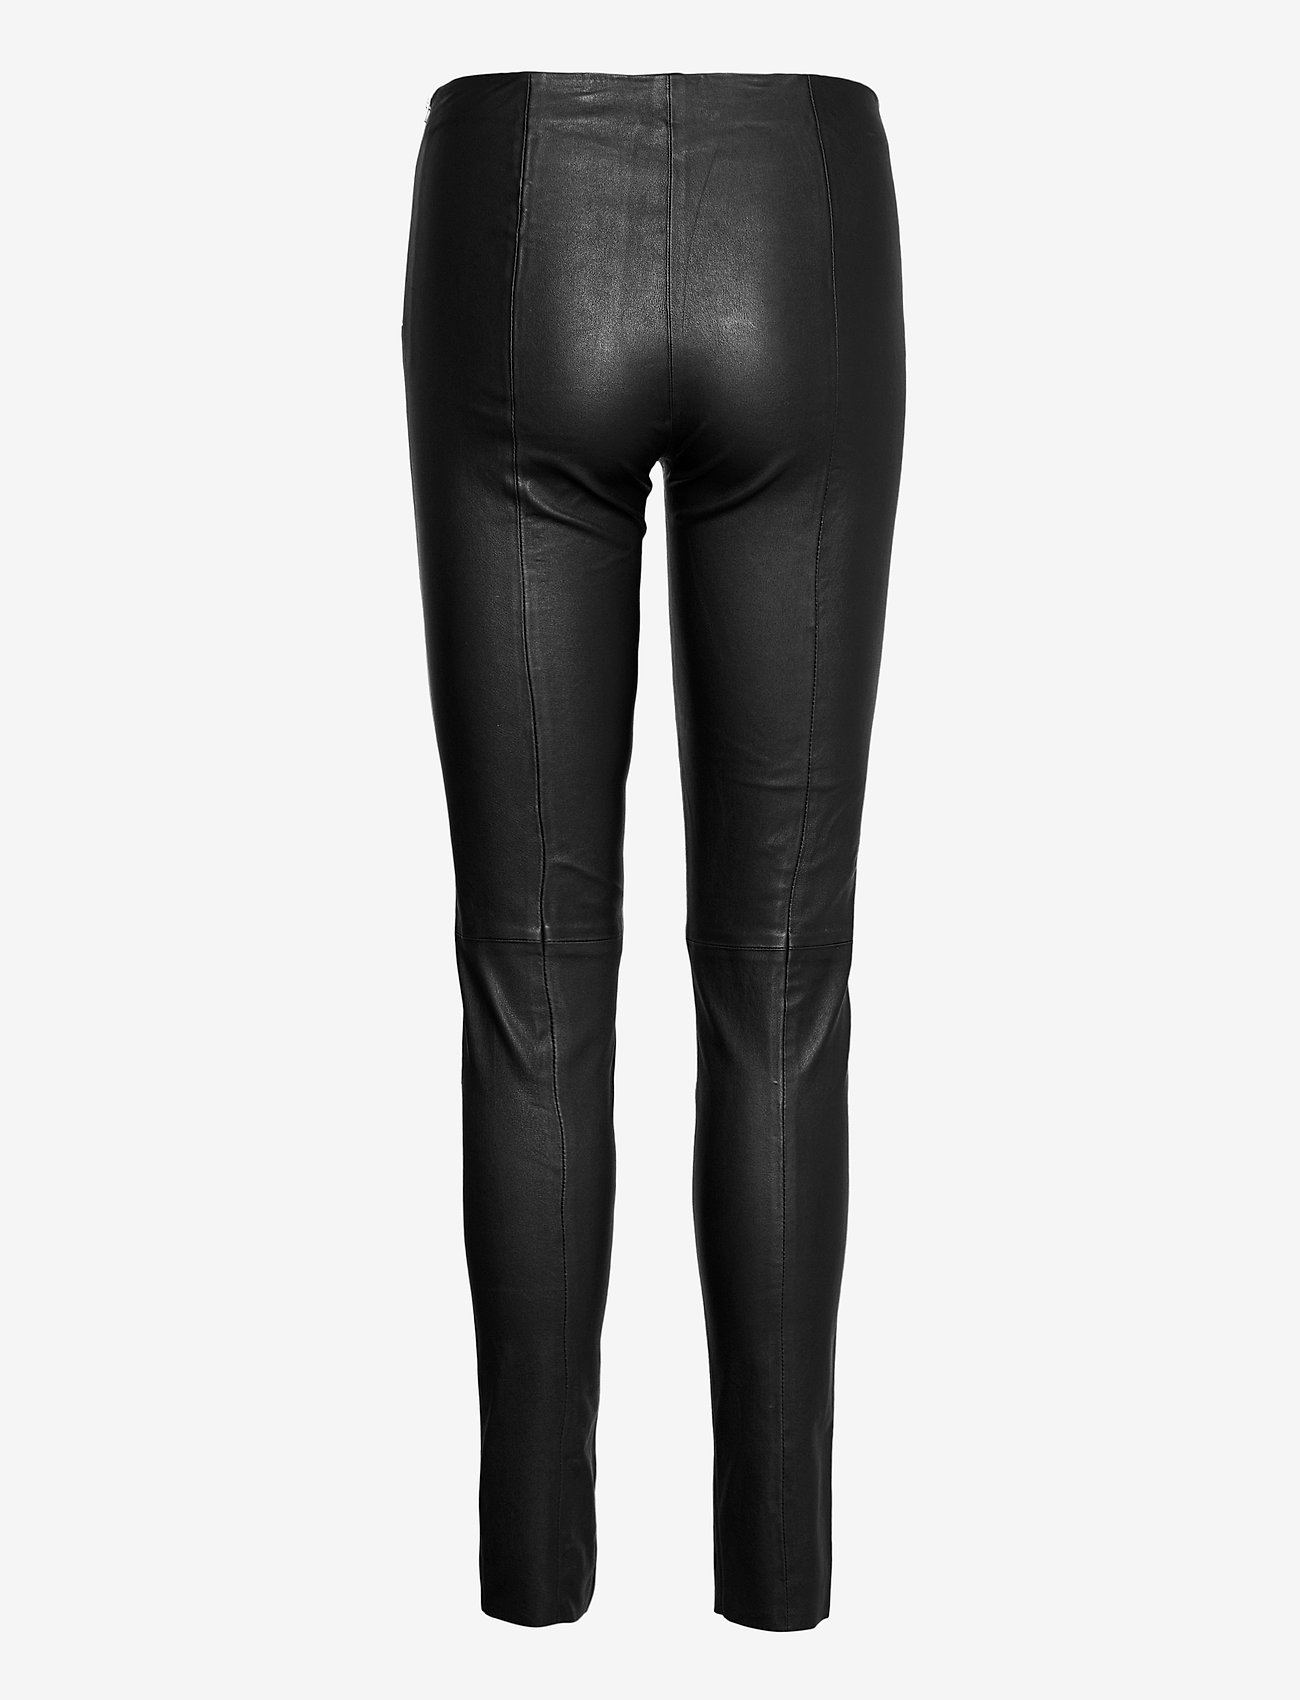 SAND - Stretch Leather - Shamar - pantalons en cuir - black - 1